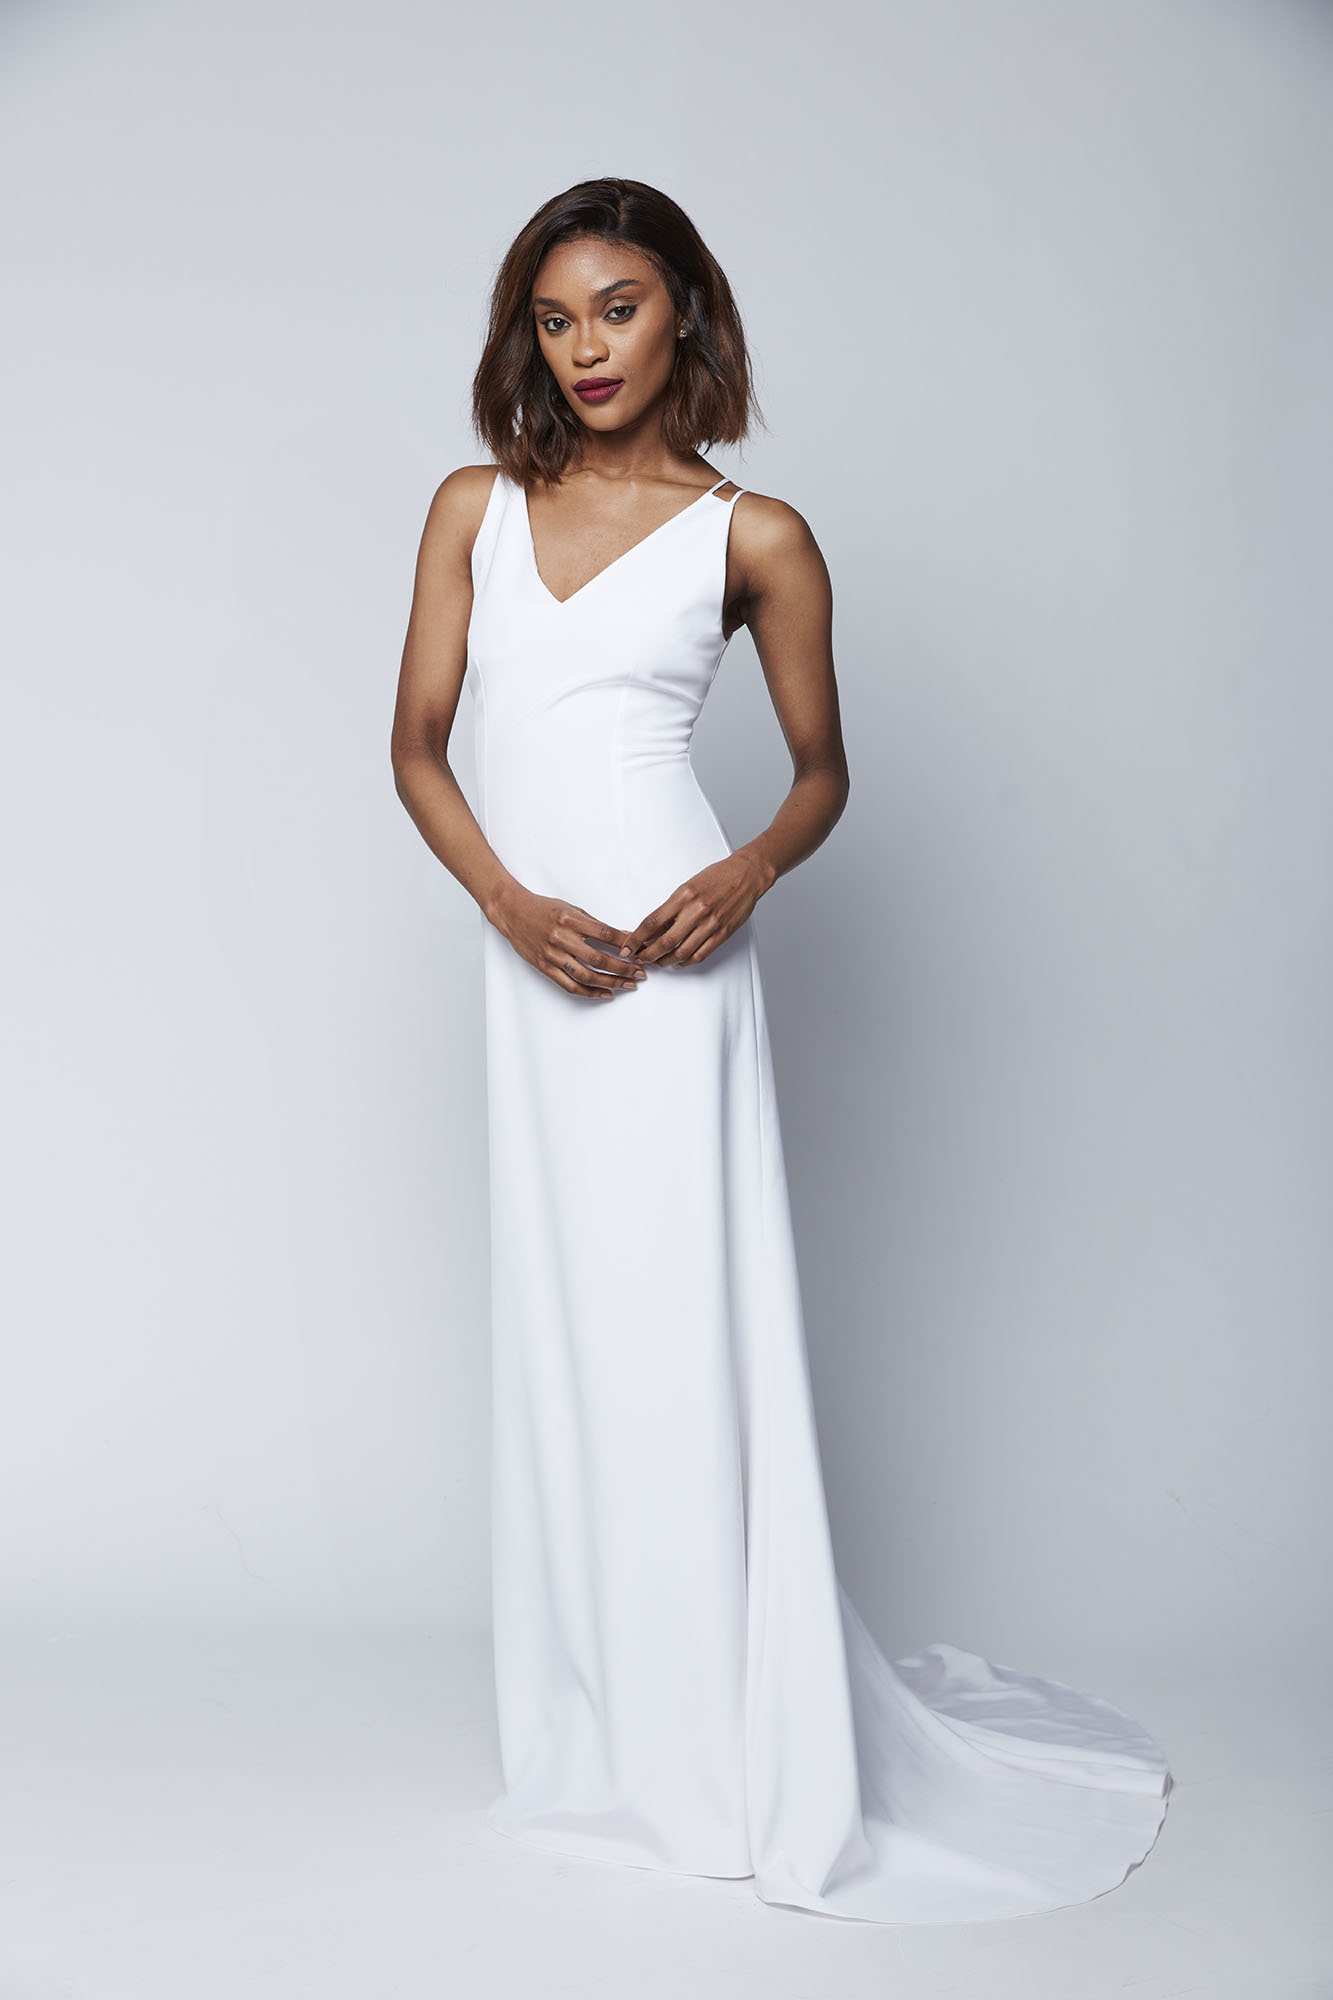 Designed with romantic brides in mind, this form fitting gown with double straps and dramatic train is sure to turn heads as you walk down the aisle.